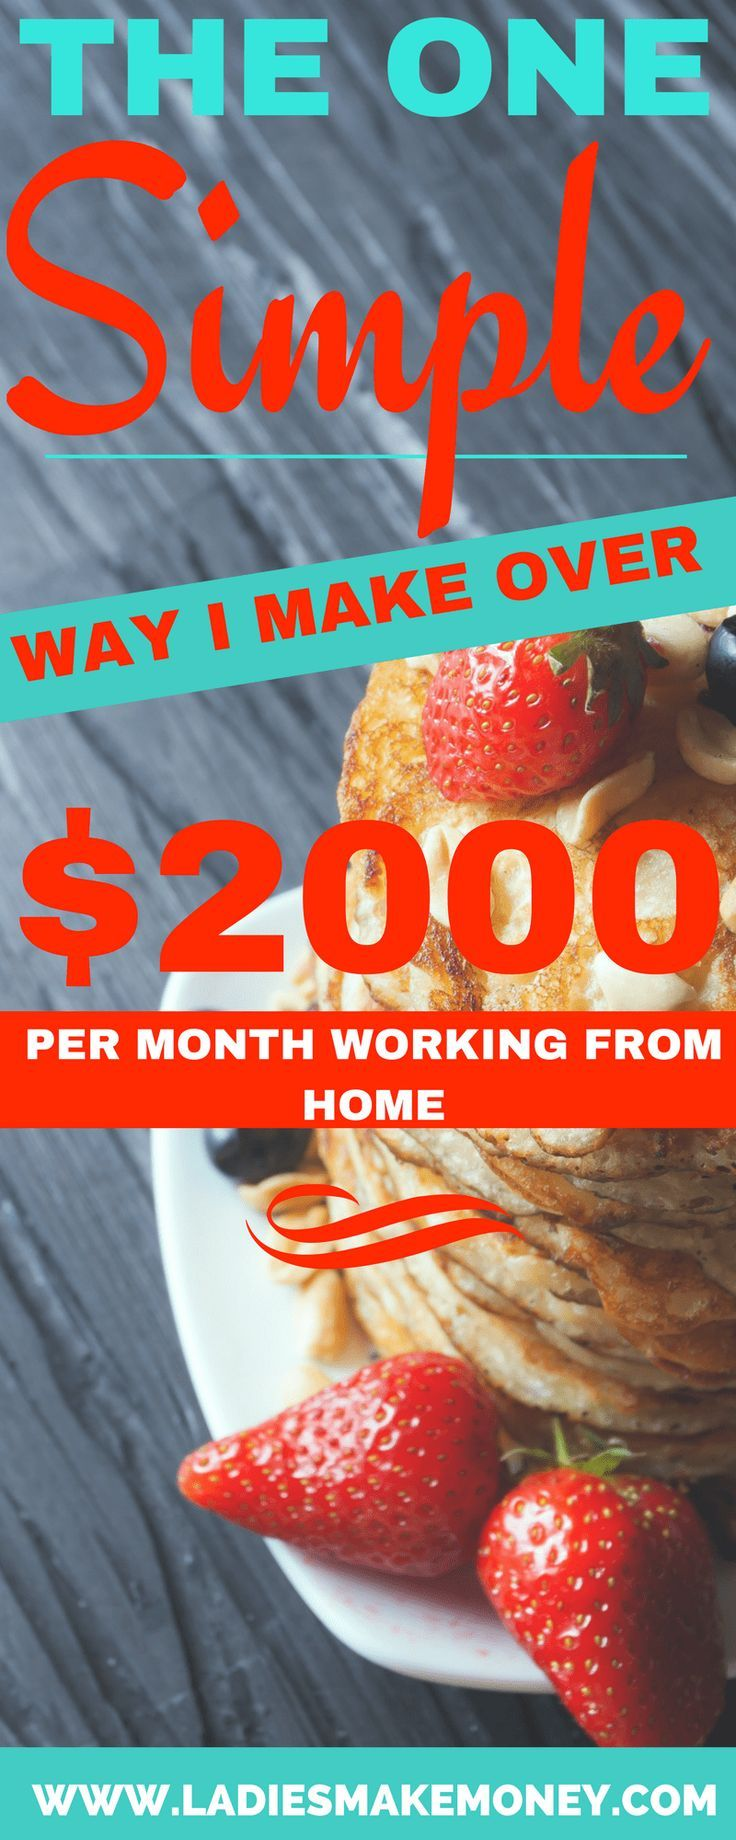 The One Stay at Home Job that will make you $2000 per month